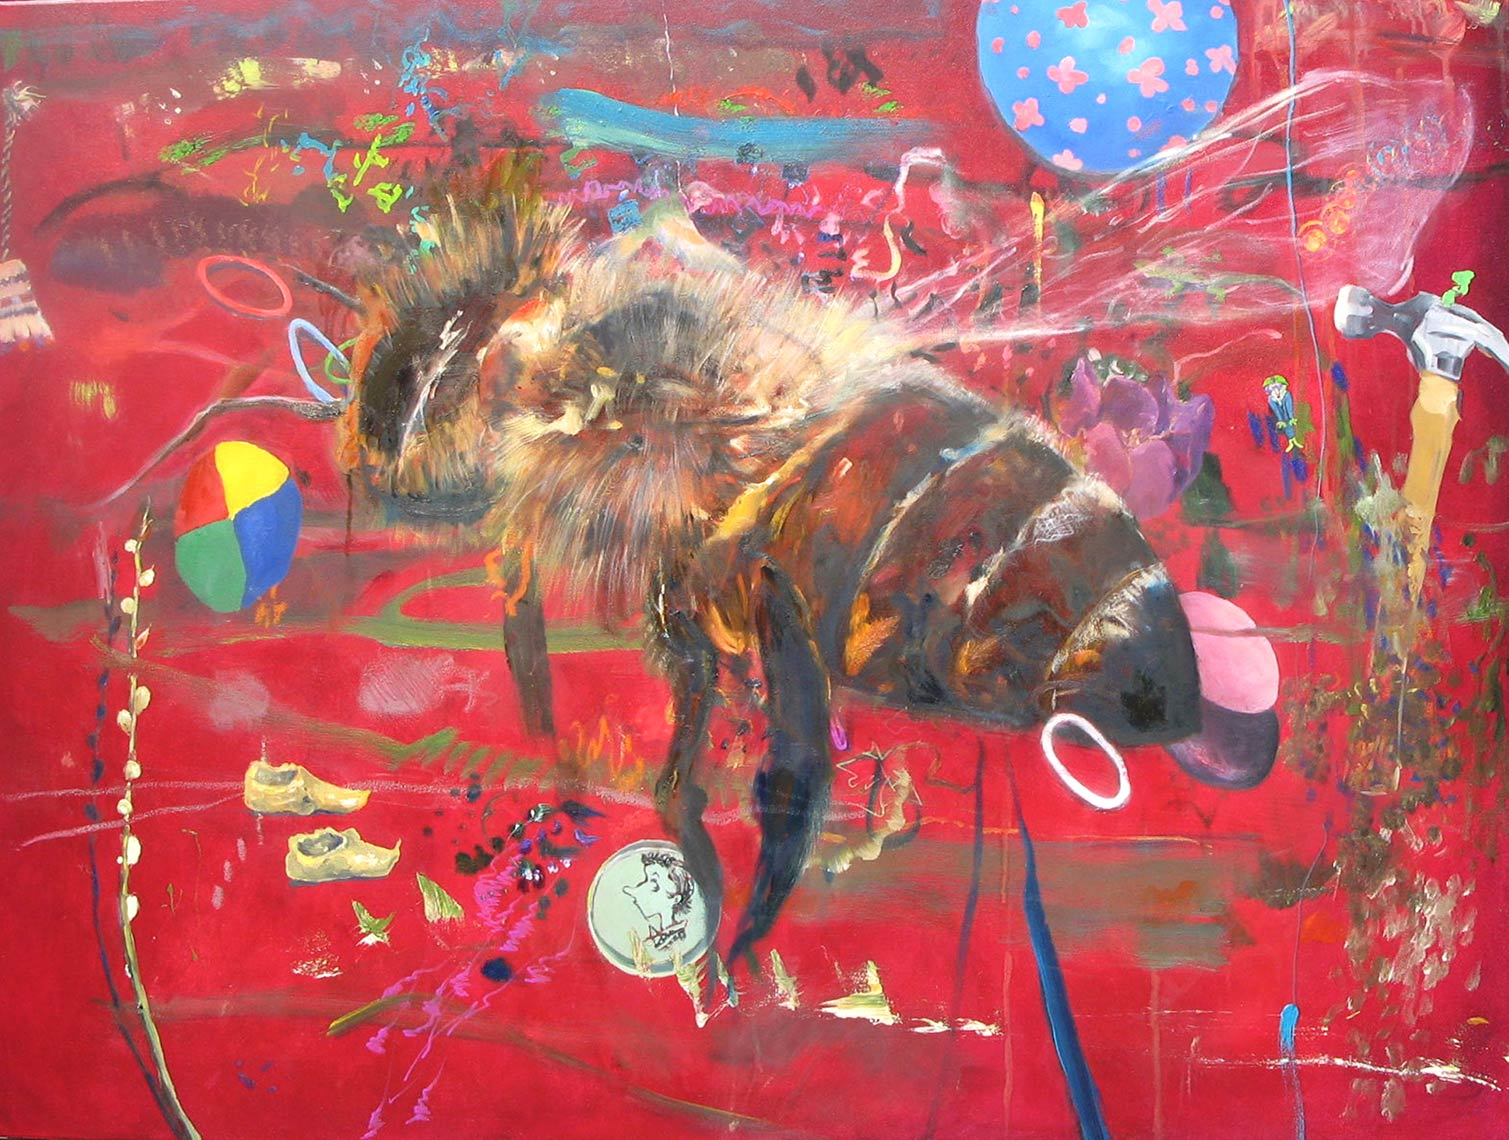 WhereHaveAlltheBeesGone-2010-Oil-on-canvas-40-x-30